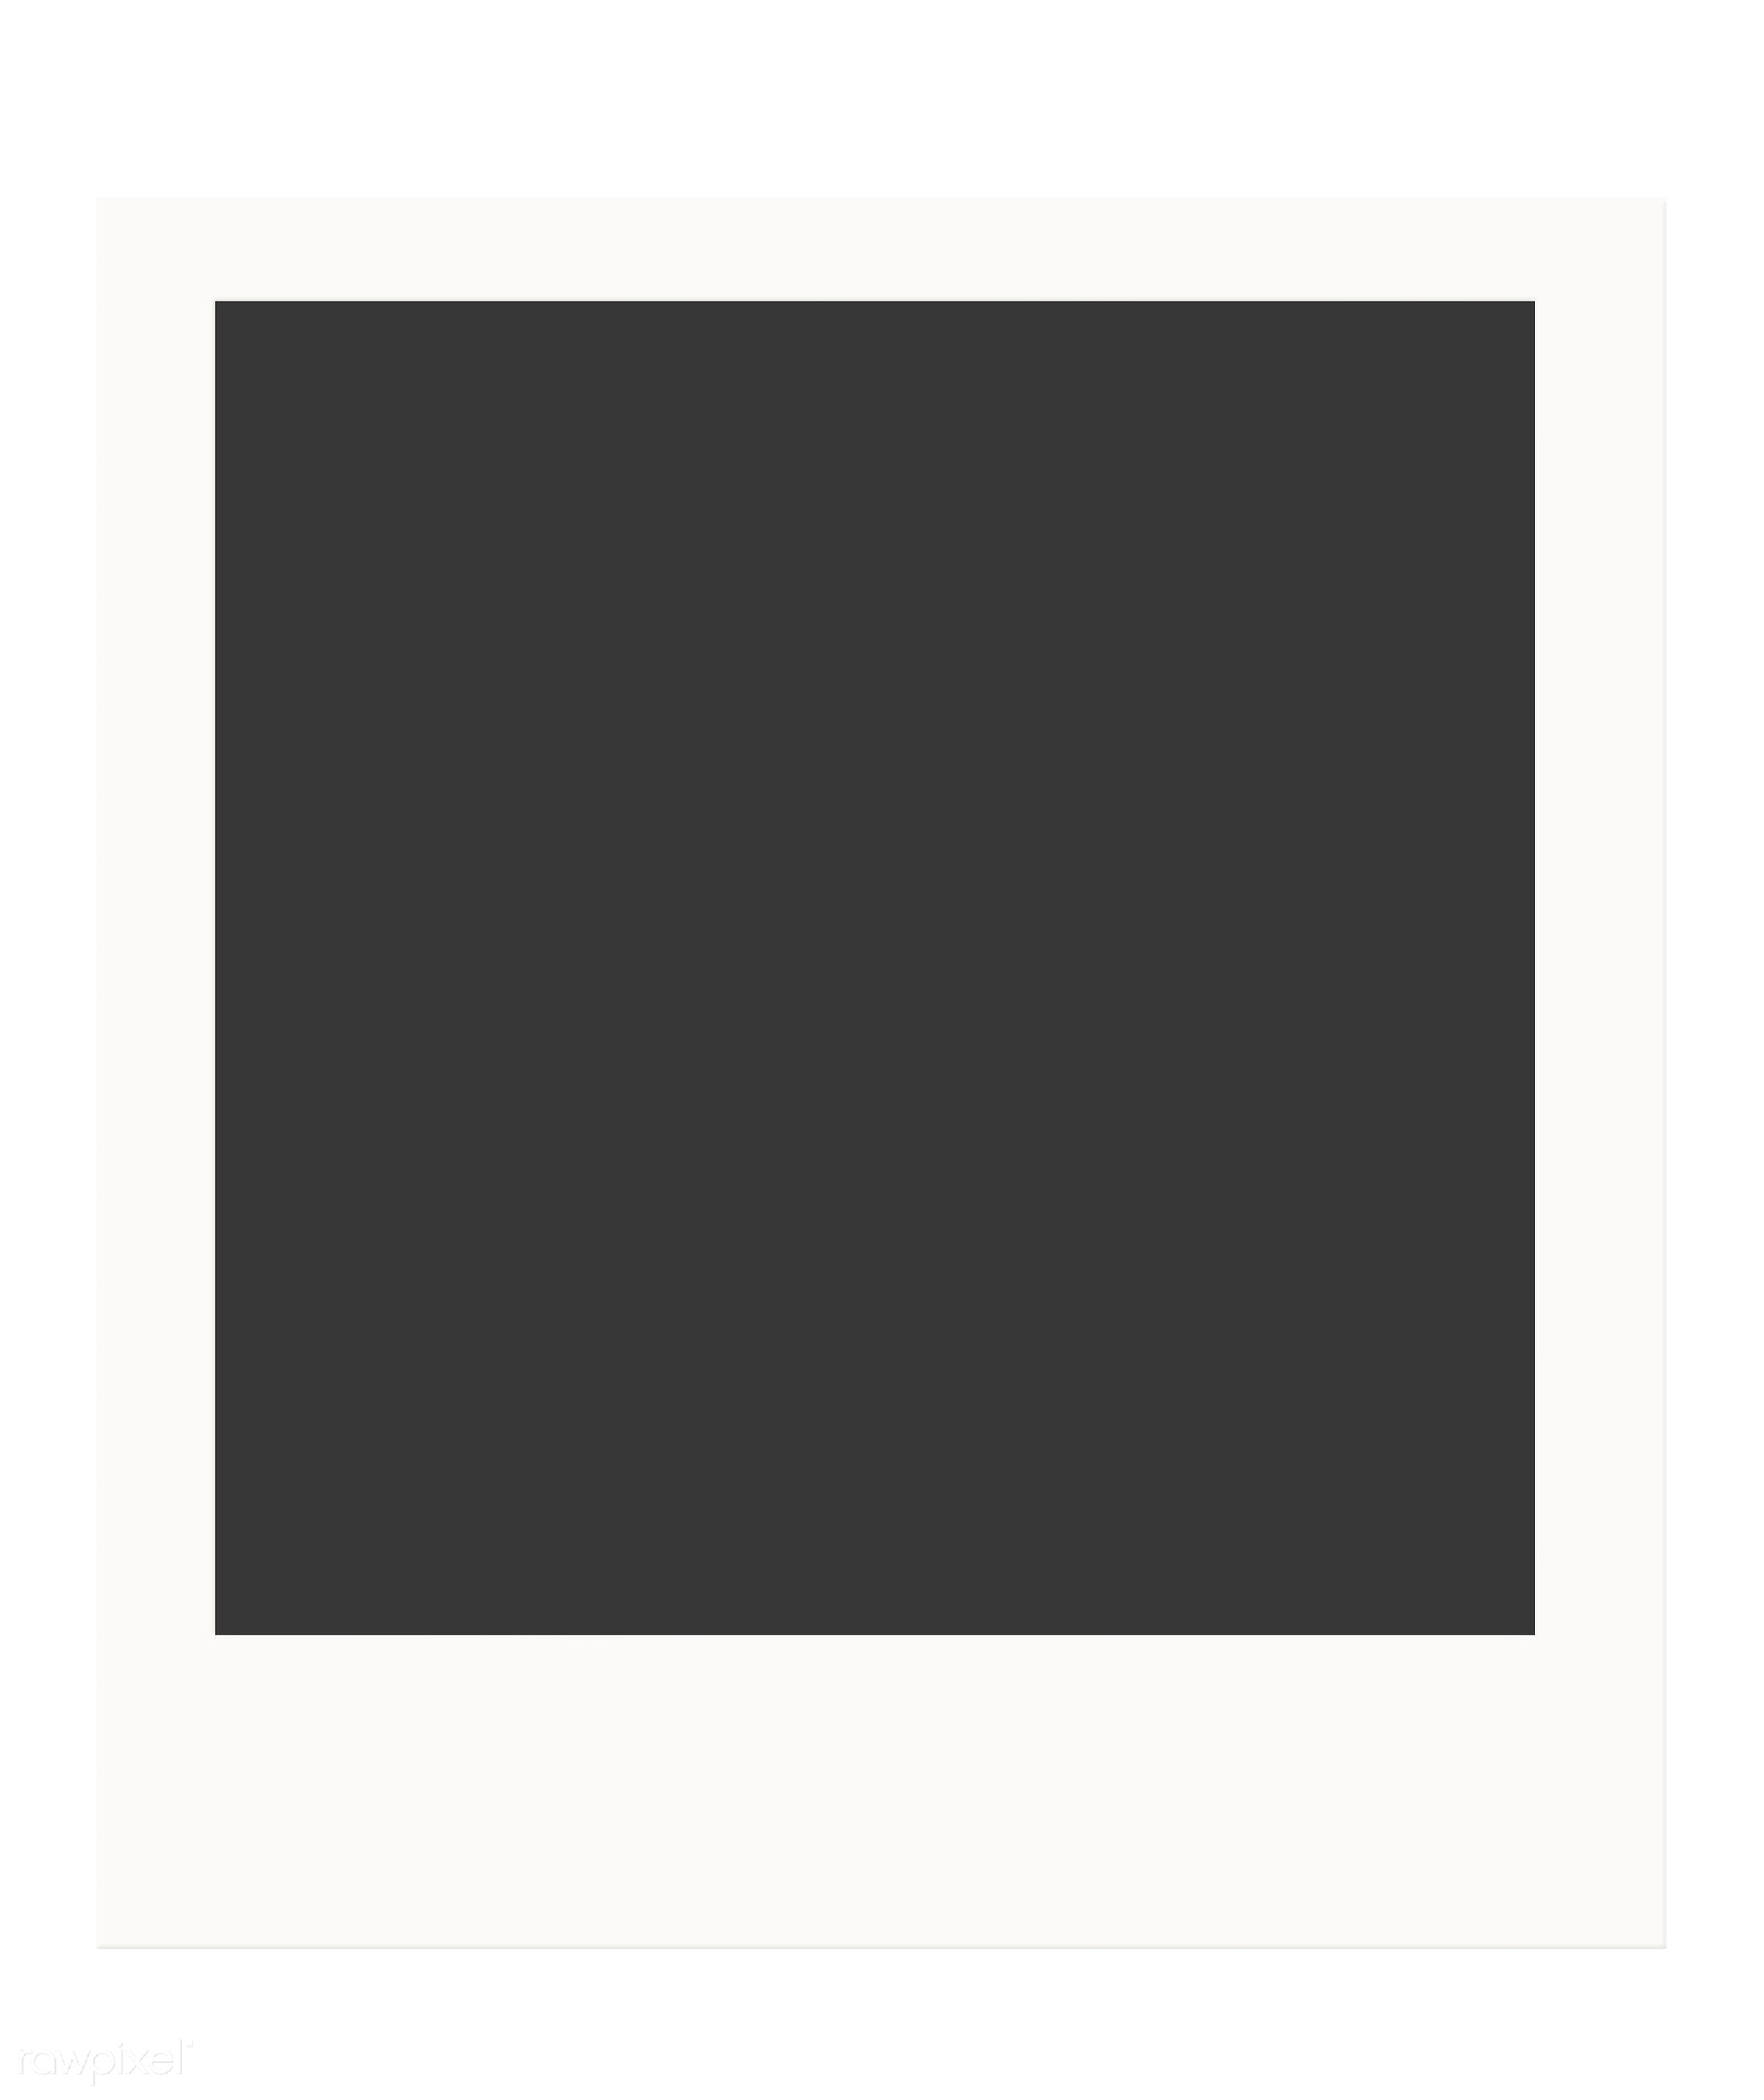 blank, border, copy space, creative, design, empty, frame, mock up, mockup, paper, photo, photo paper, photograph, picture